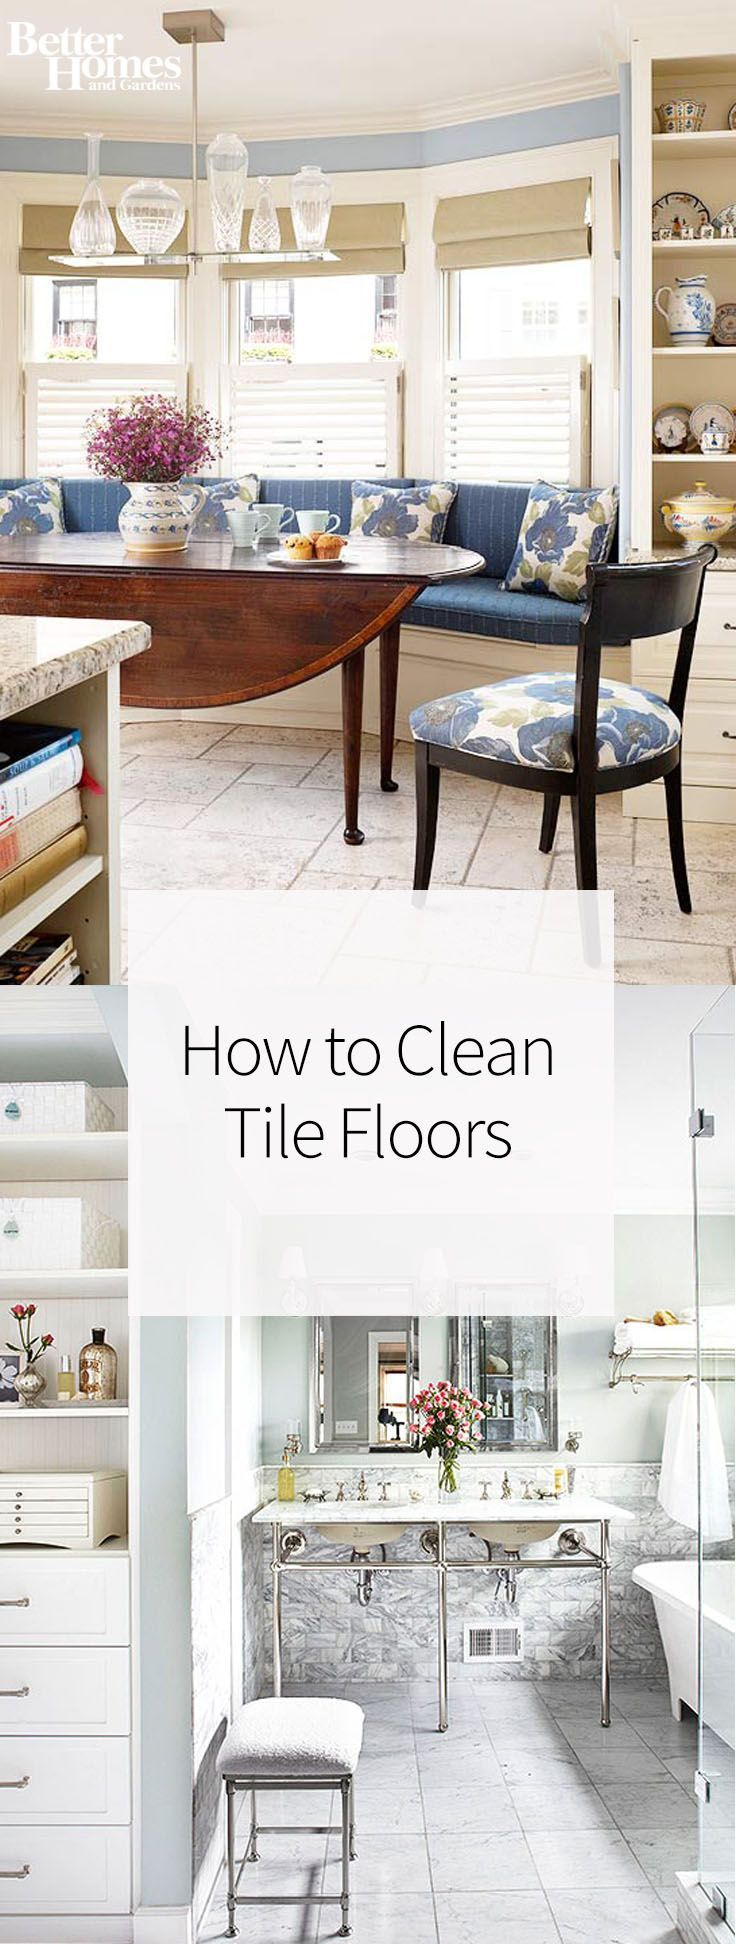 Cleaning tile floors and ceramics just got easier, thanks to these tips and tricks for how to clean tile floors like a pro. Use these techniques on the floors in kitchens or bathrooms to keep grout clean and to get rid of residue. Your tile will look brand new!